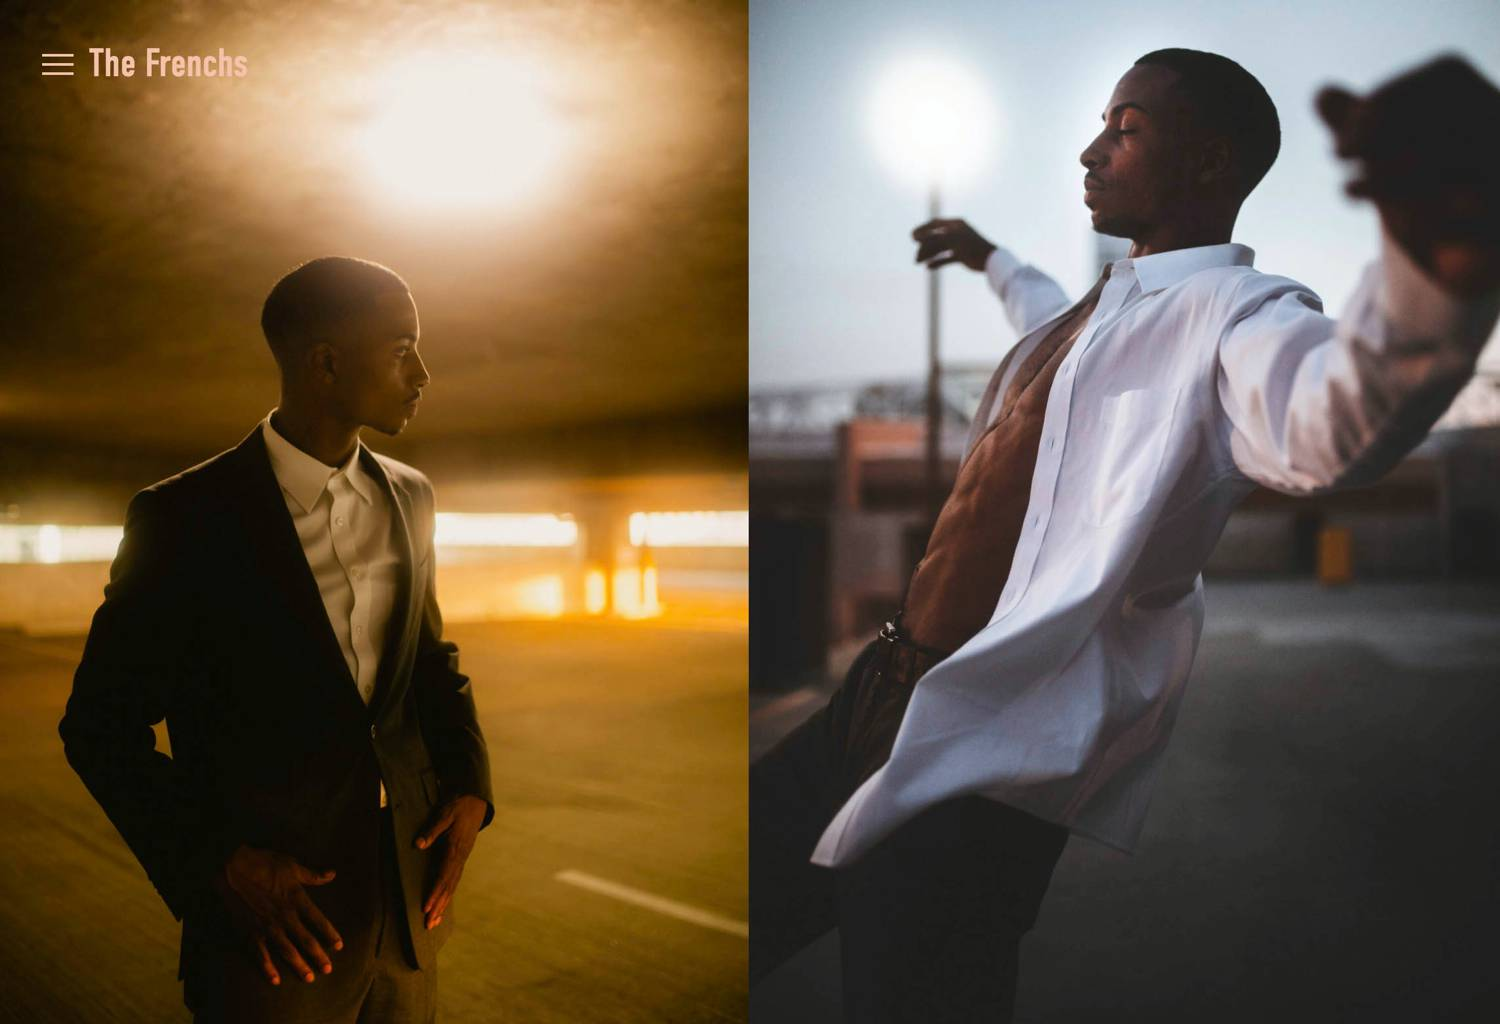 Photos: The Frenchs lifestyle fashion portraits of a young man in a parking garage.